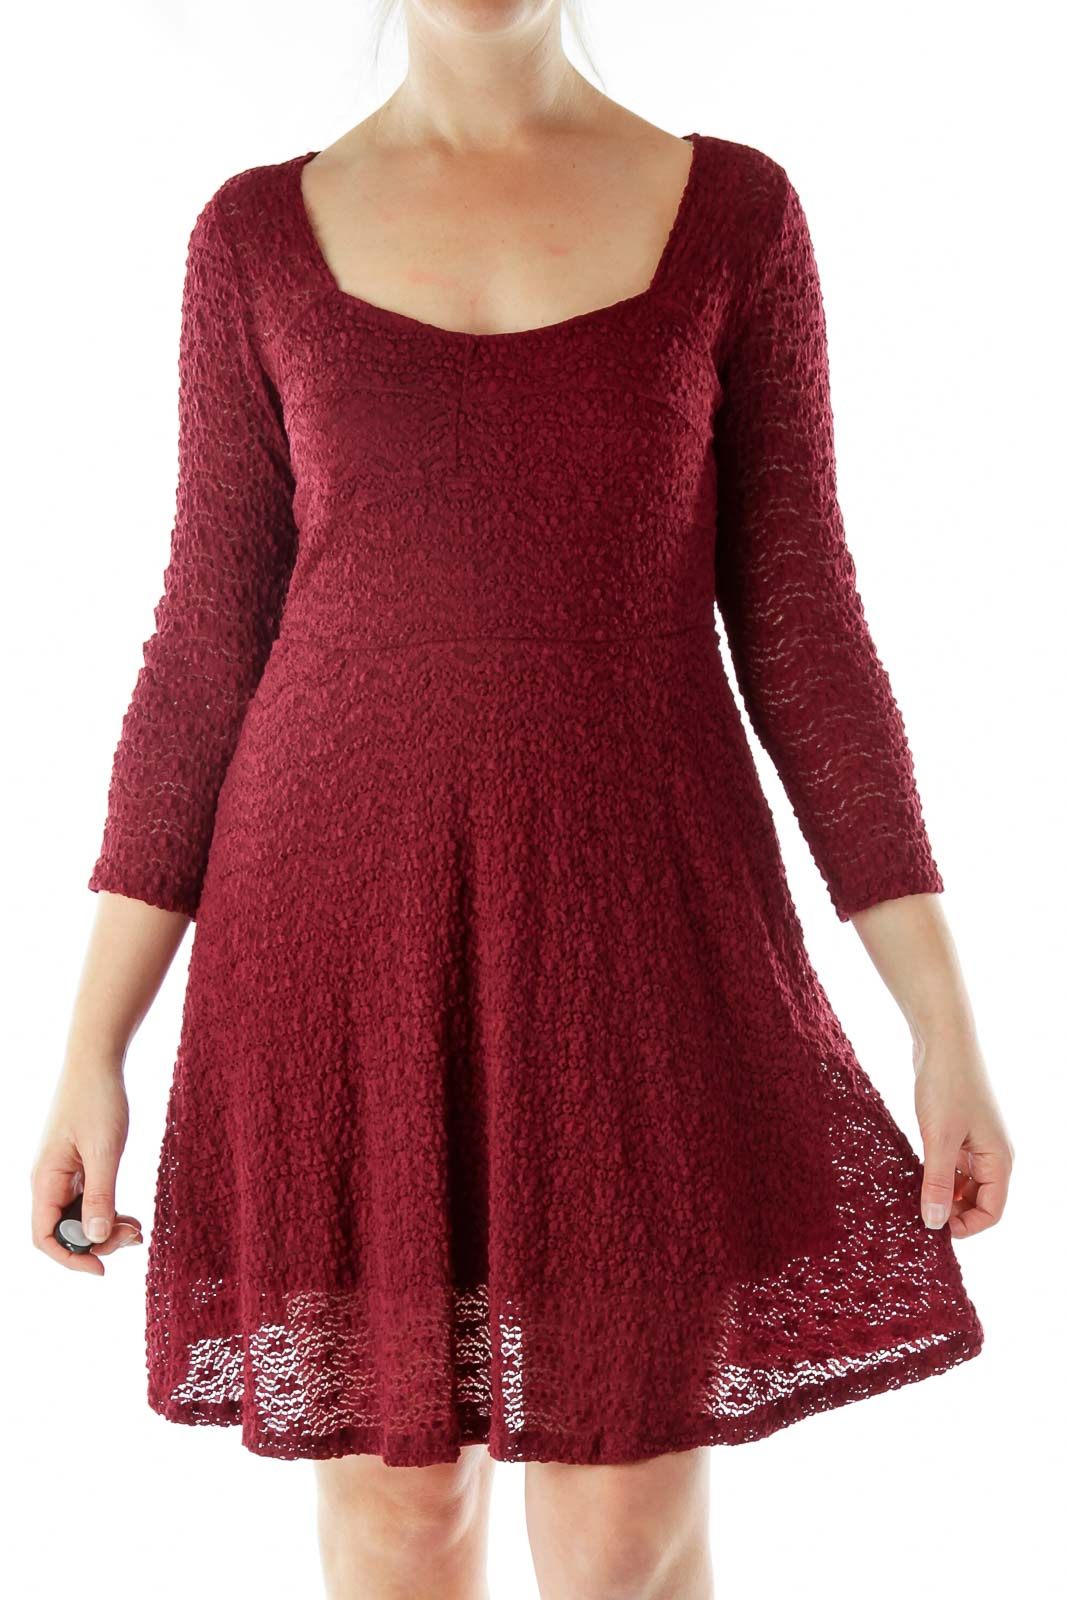 Maroon Lace Cocktail Dress Front